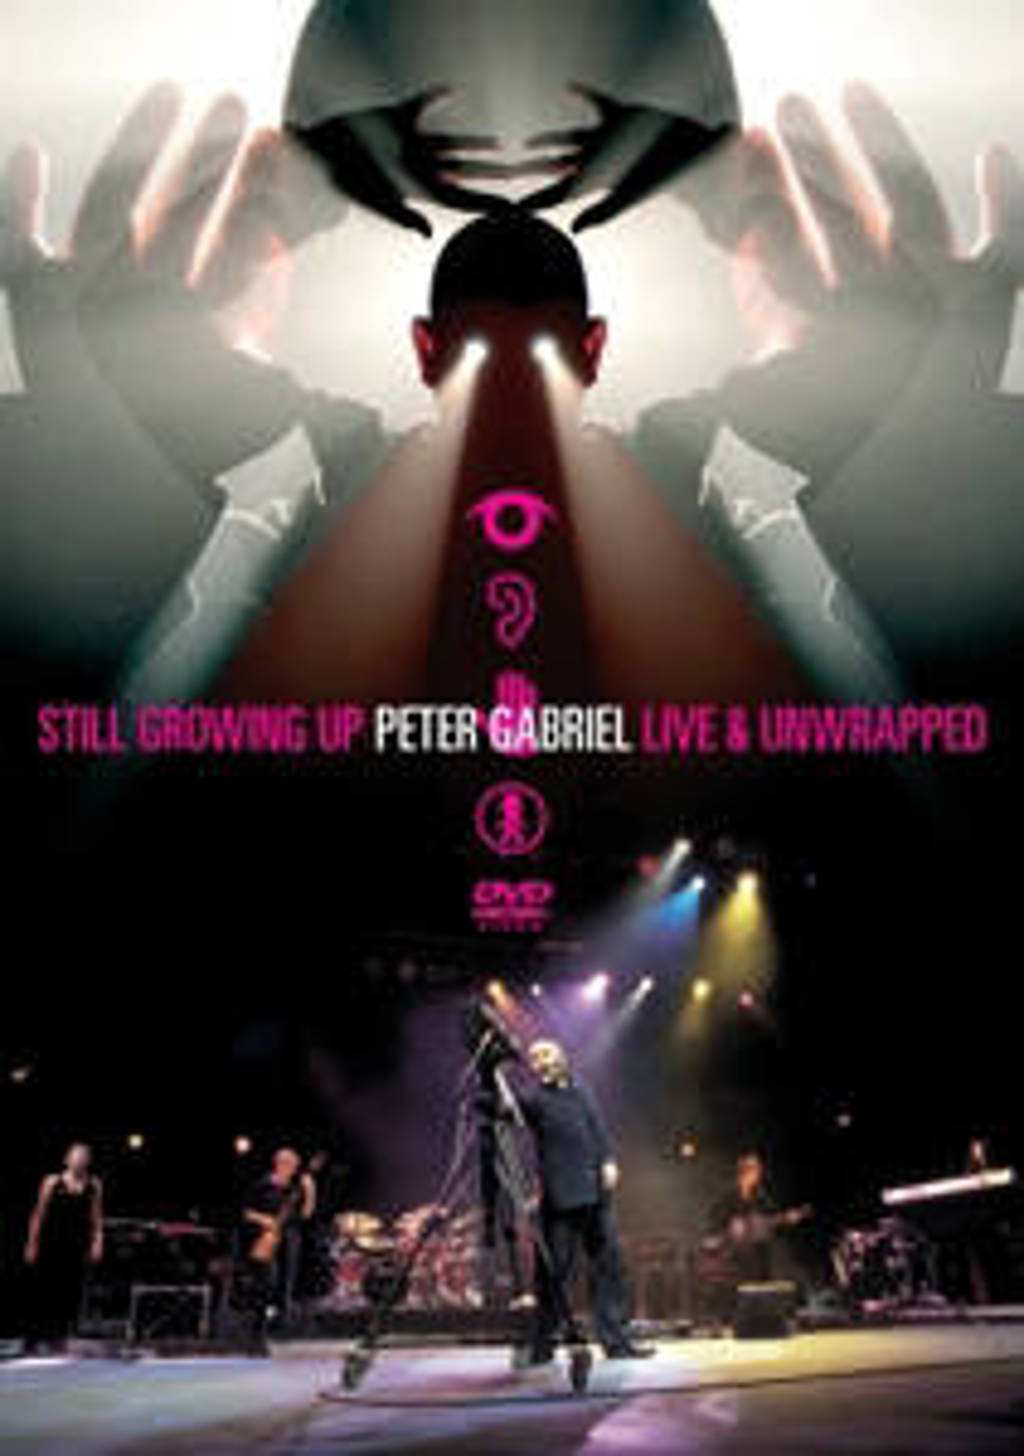 Peter Gabriel - Still Growing Up - Live & Unwrapped (DVD)